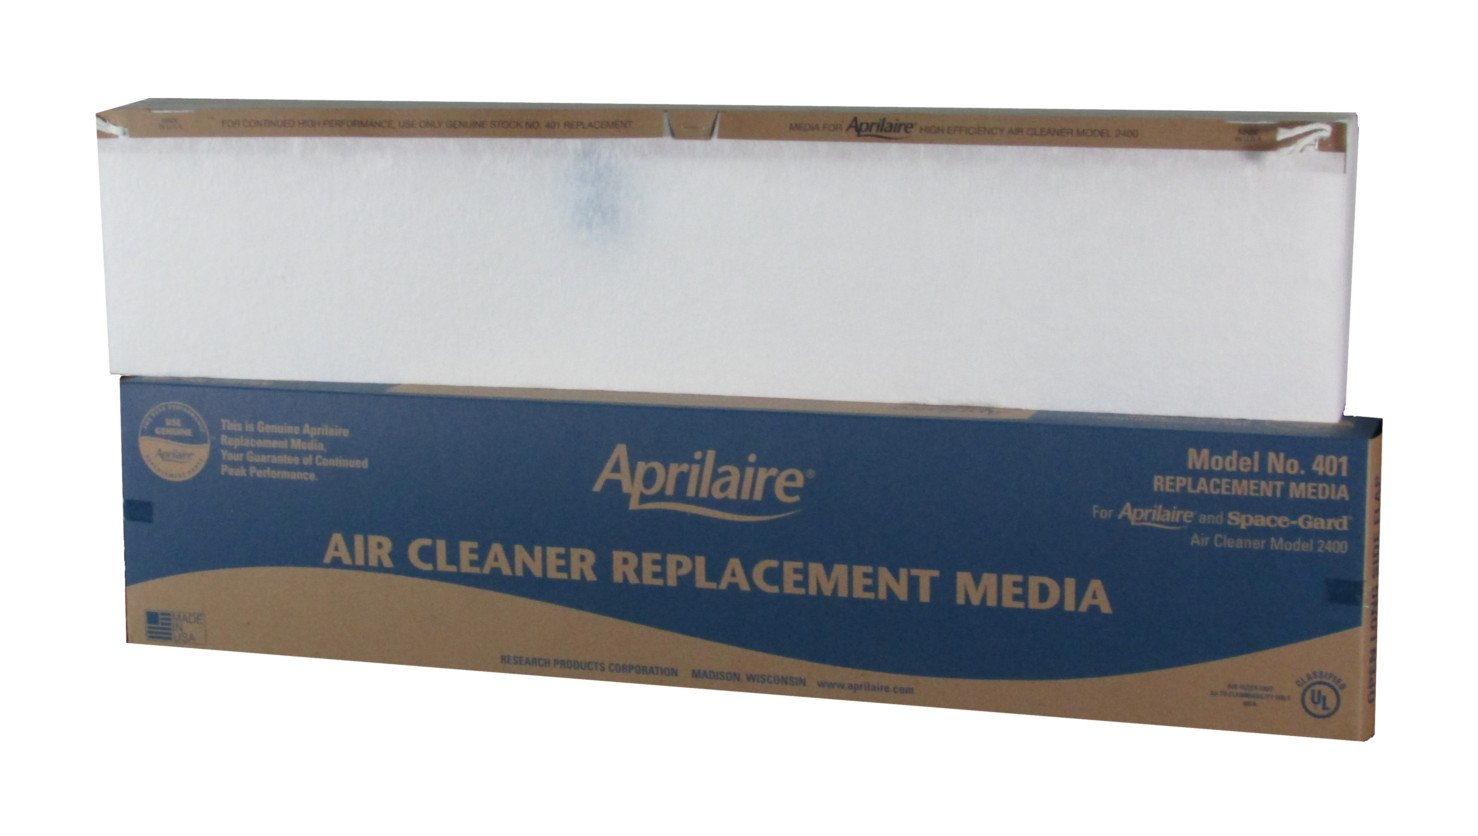 Pack of 2 Aprilaire 401 Replacement Filter for Air Purifier 2400 MERV 10